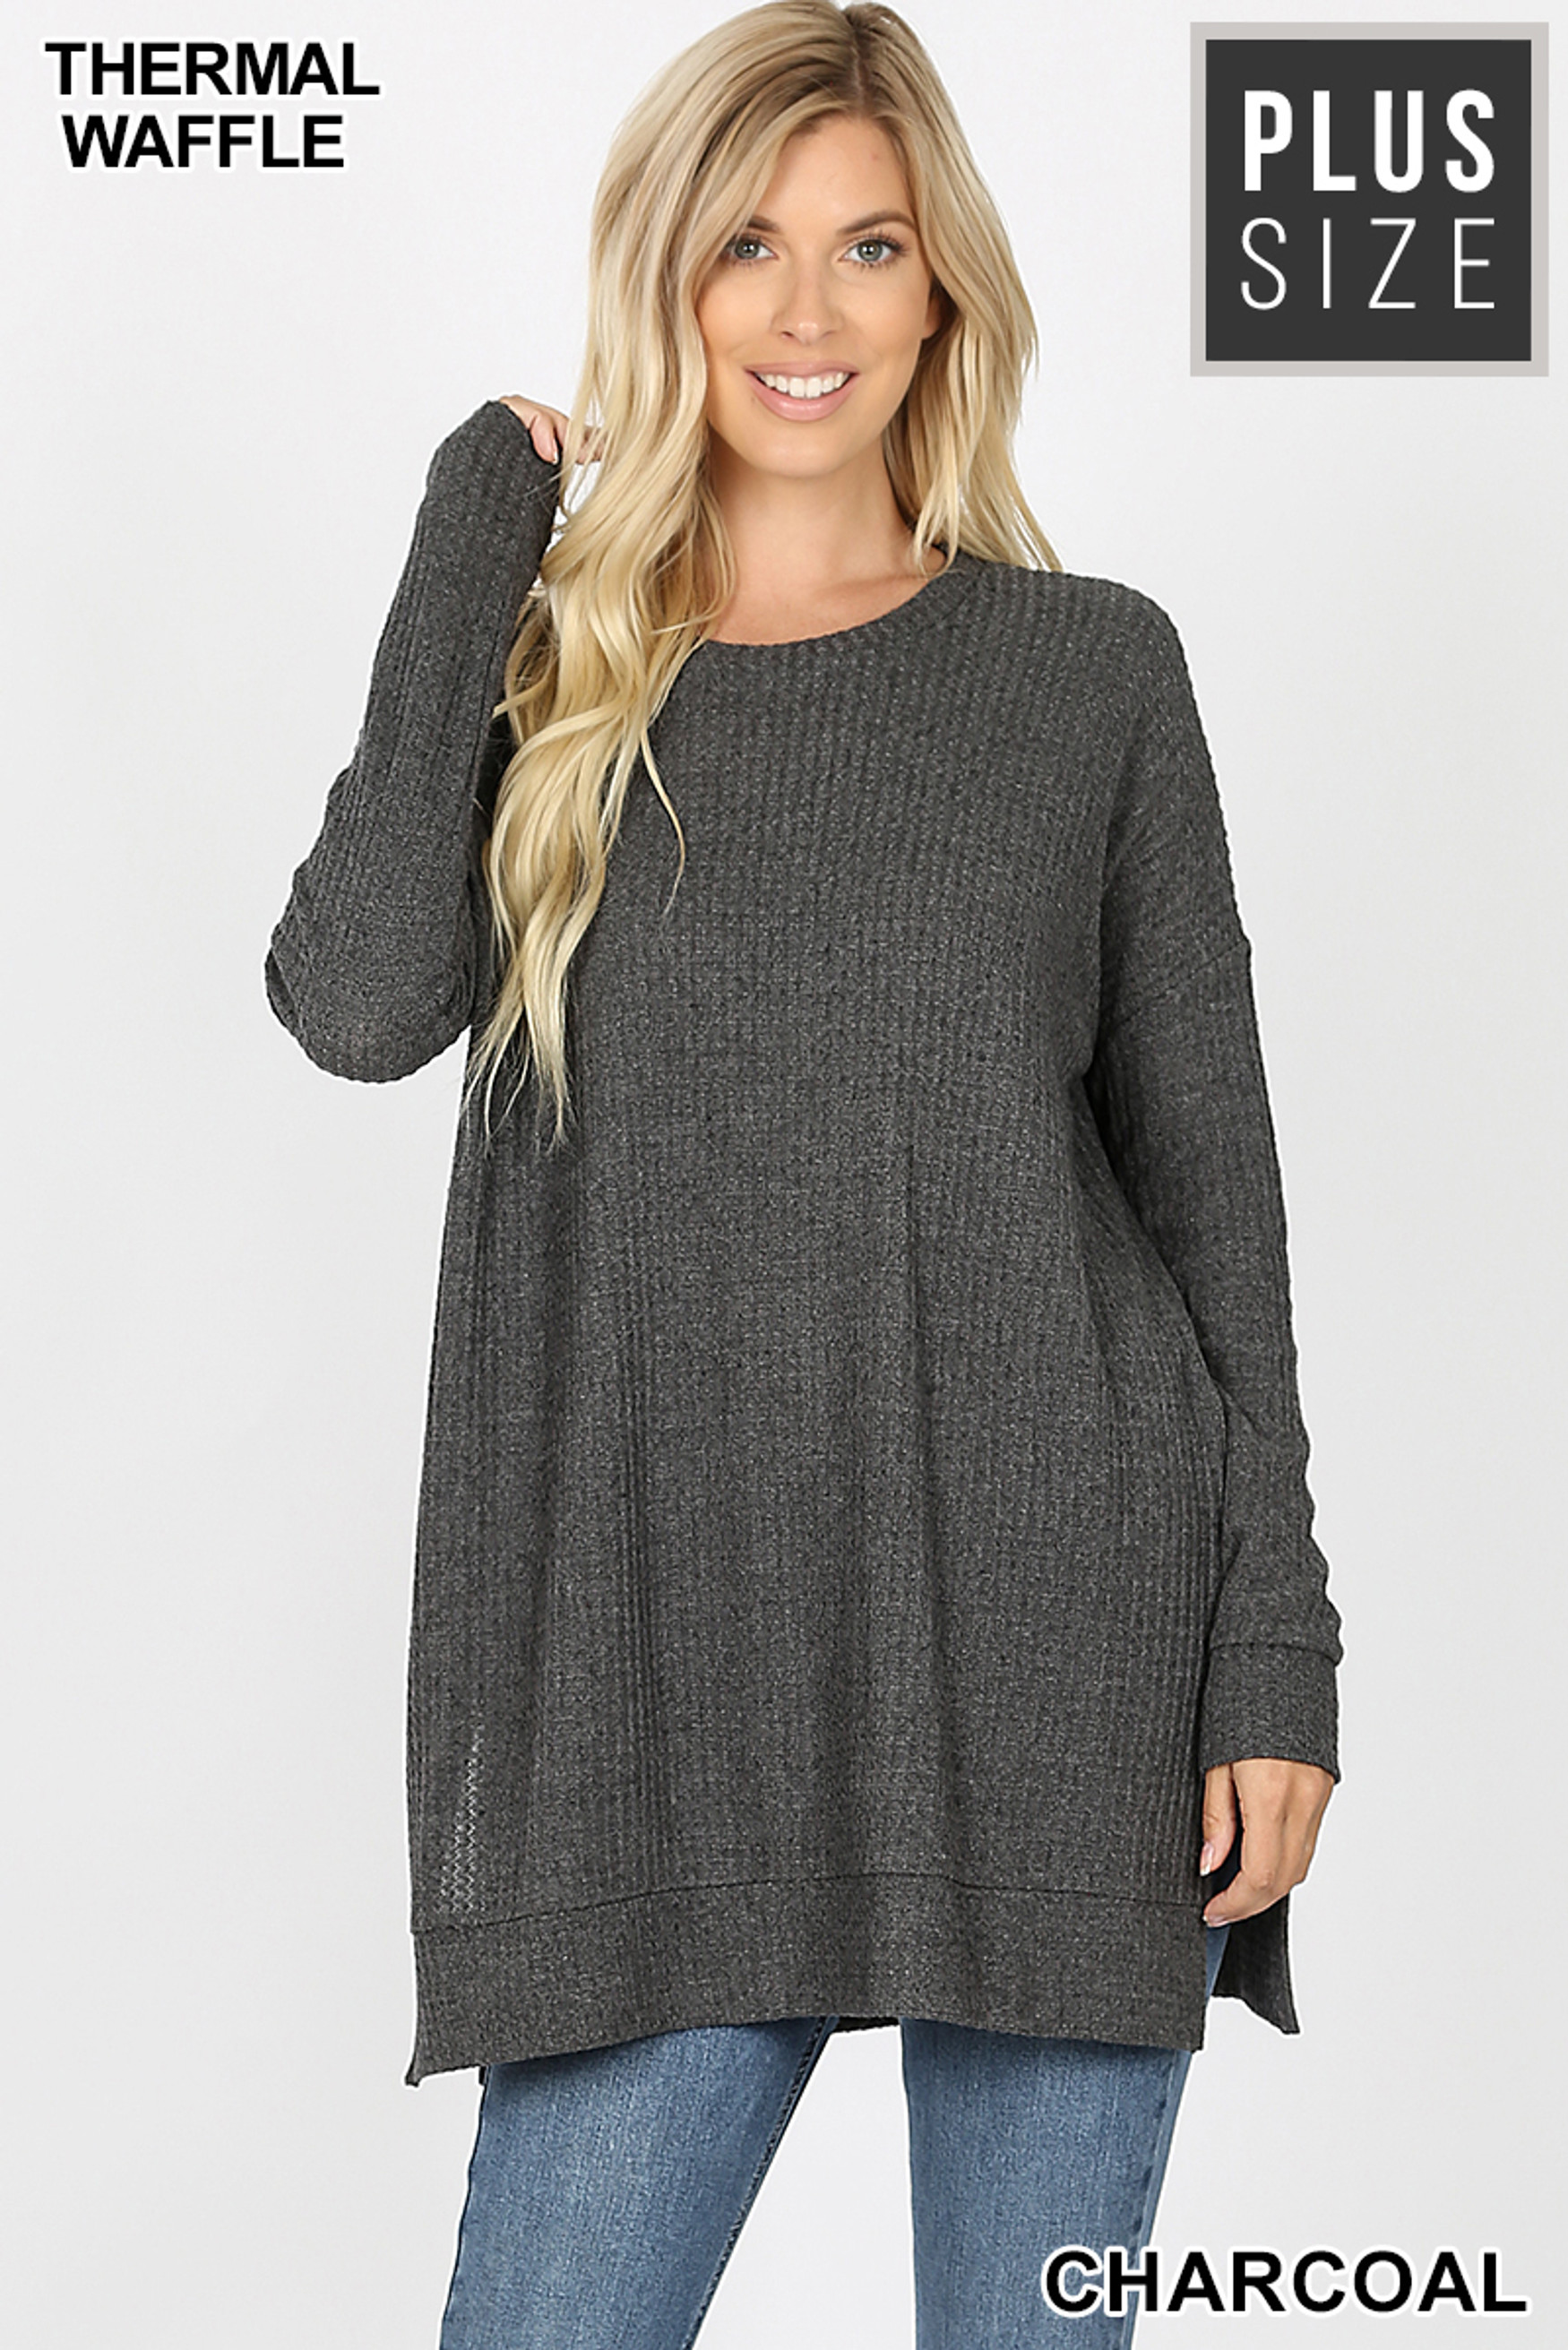 Front image of Charcoal Brushed Thermal Waffle Knit Round Neck Plus Size Sweater